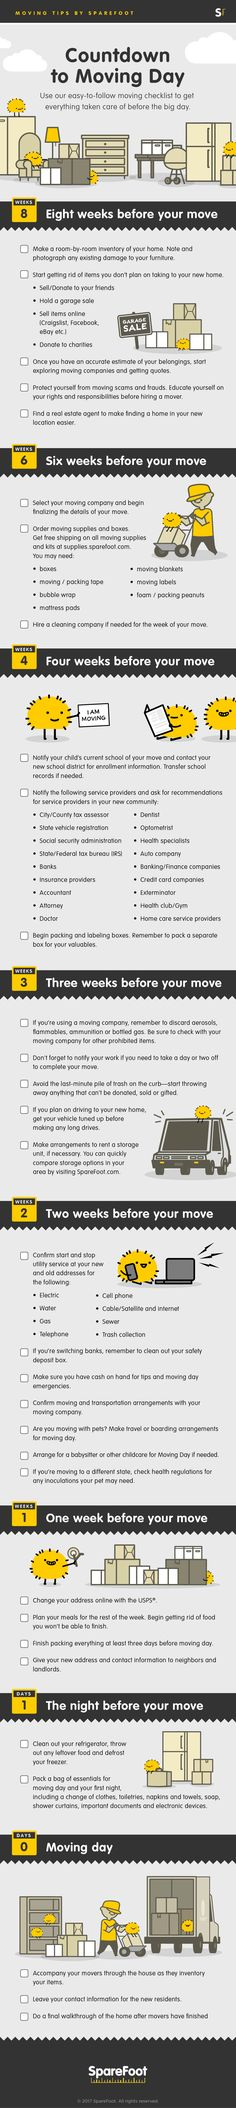 Whether you are relocating across the country or just down the street, our handy checklist will help you stay on top of things as the big day approaches. Simply complete the items on the timeline below as each week passes to prepare for your move.